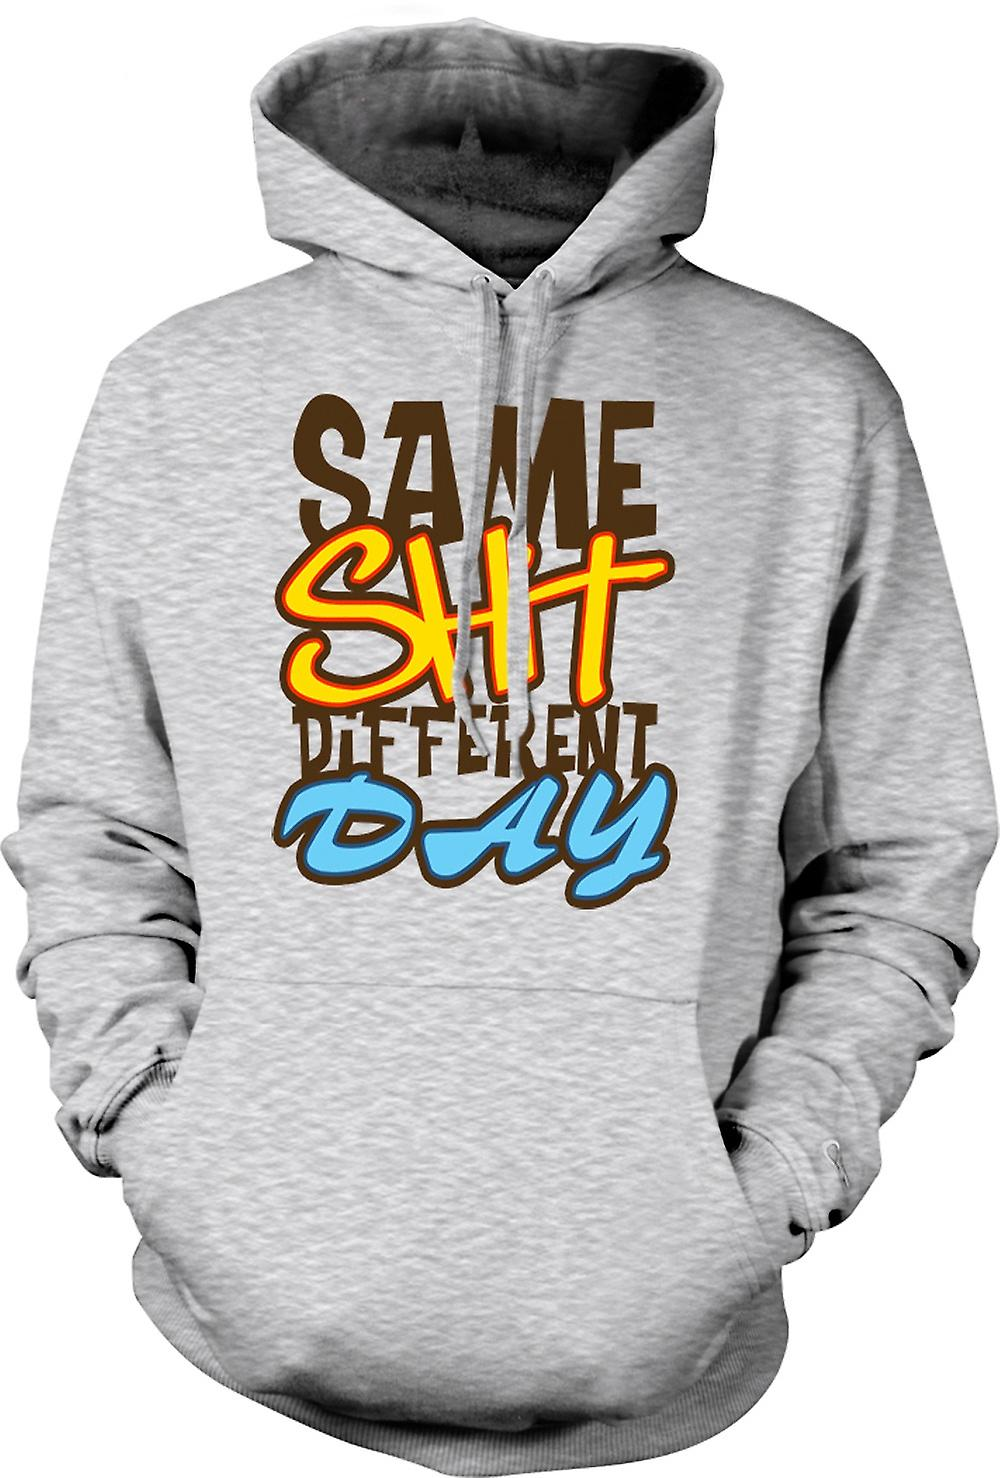 Mens Hoodie - même merde Different Day - Quote